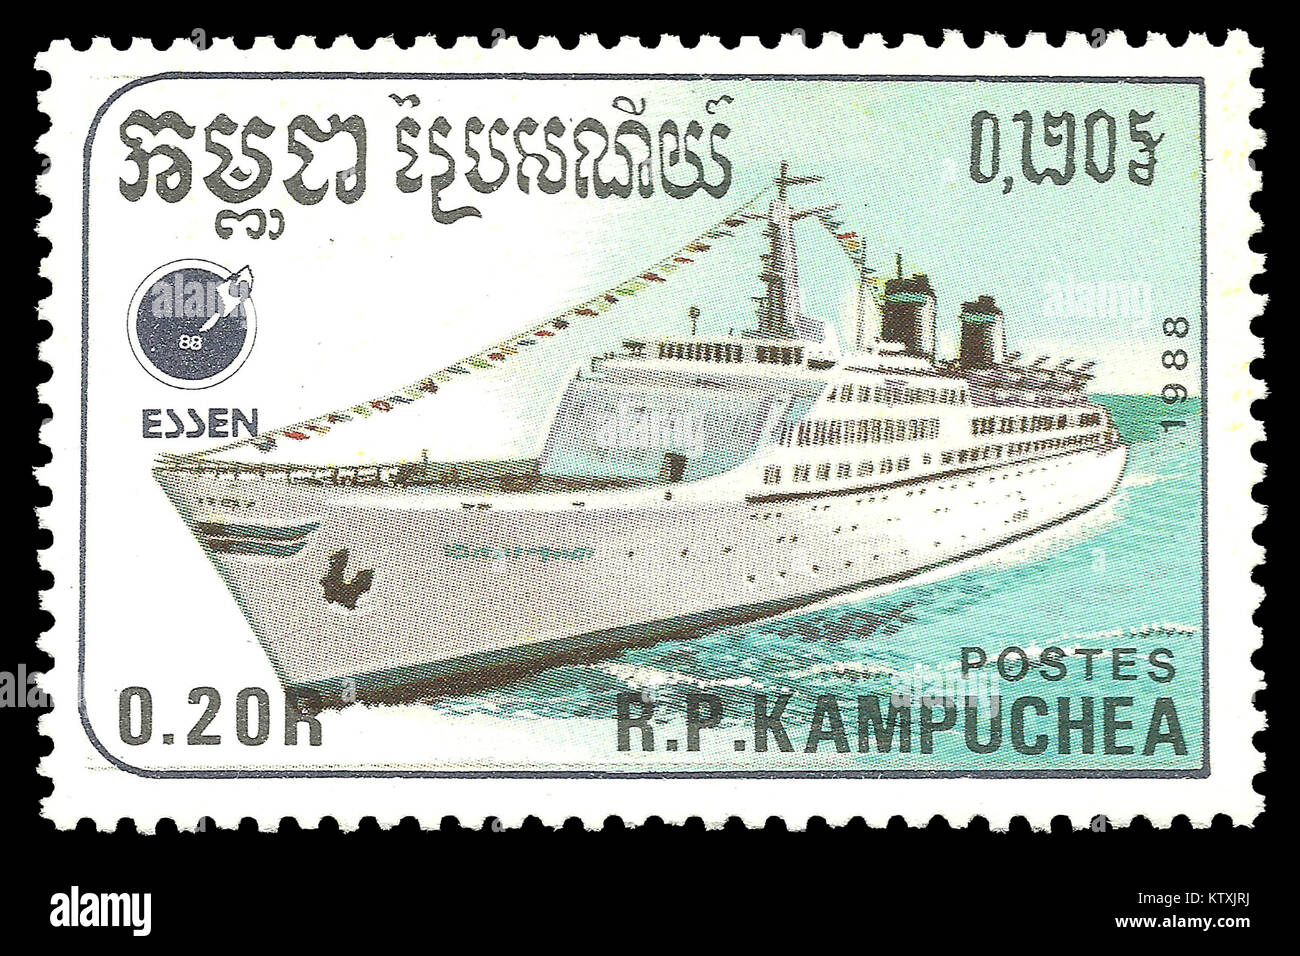 Cambodia - stamp 1988: Color edition on Ships, shows Ocean liner Emerald Seas Stock Photo